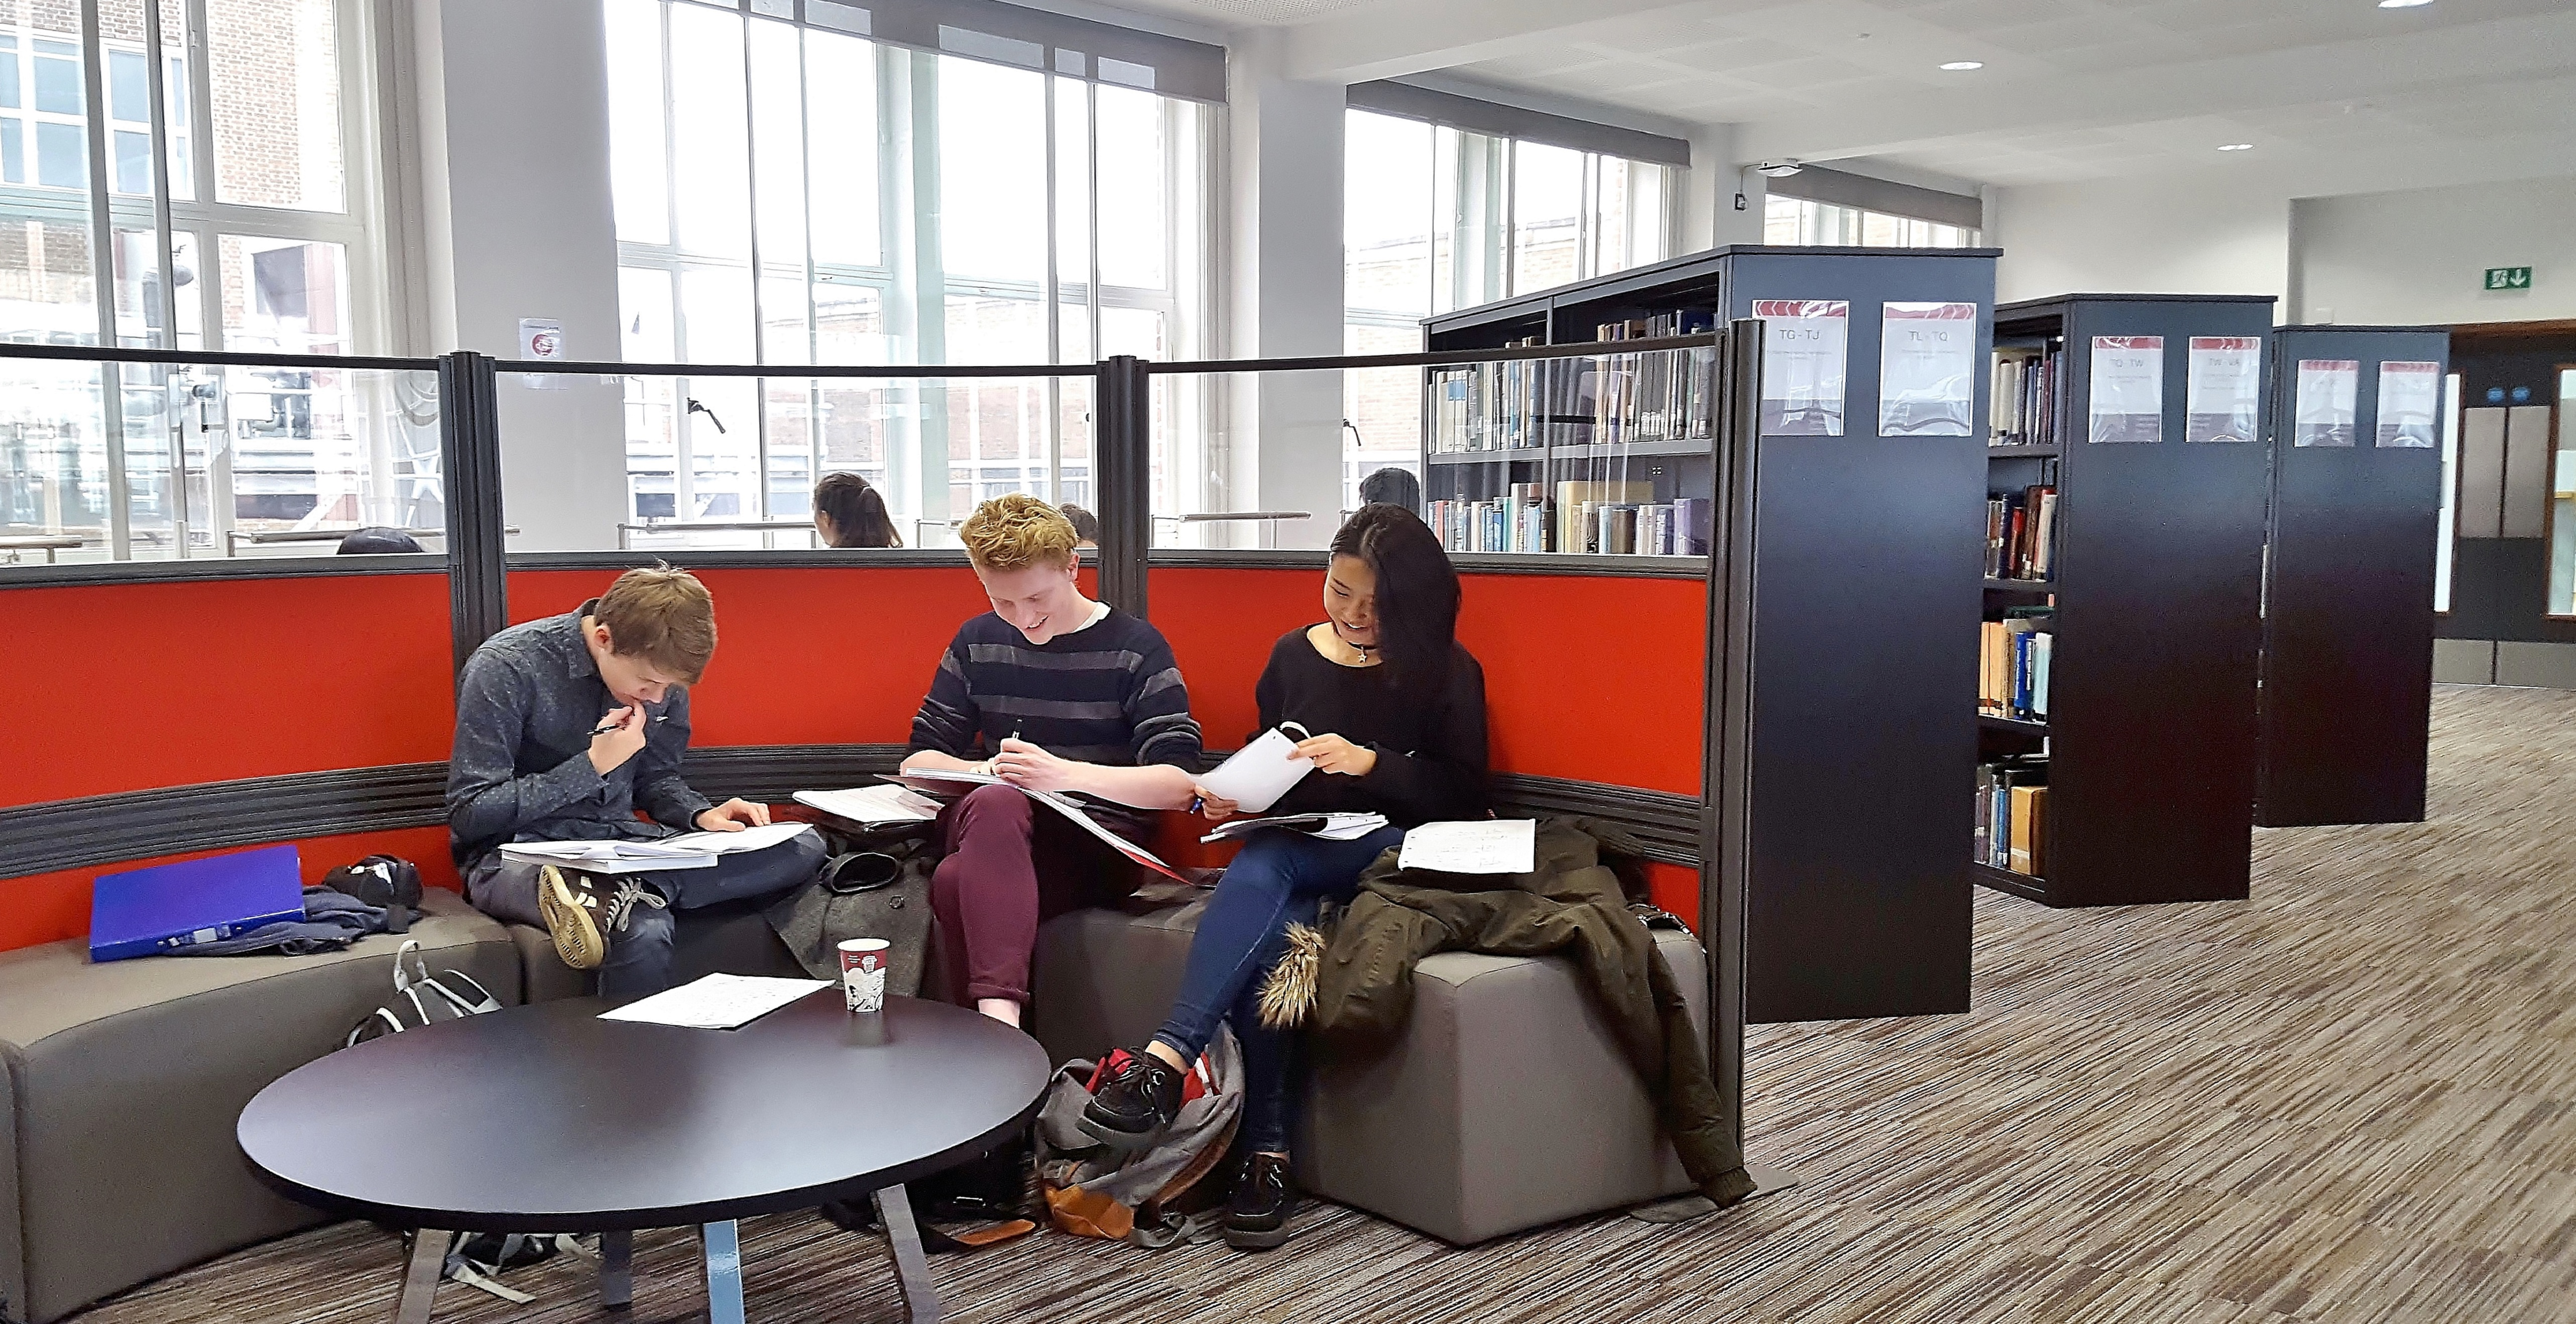 Students having a discussion in the library